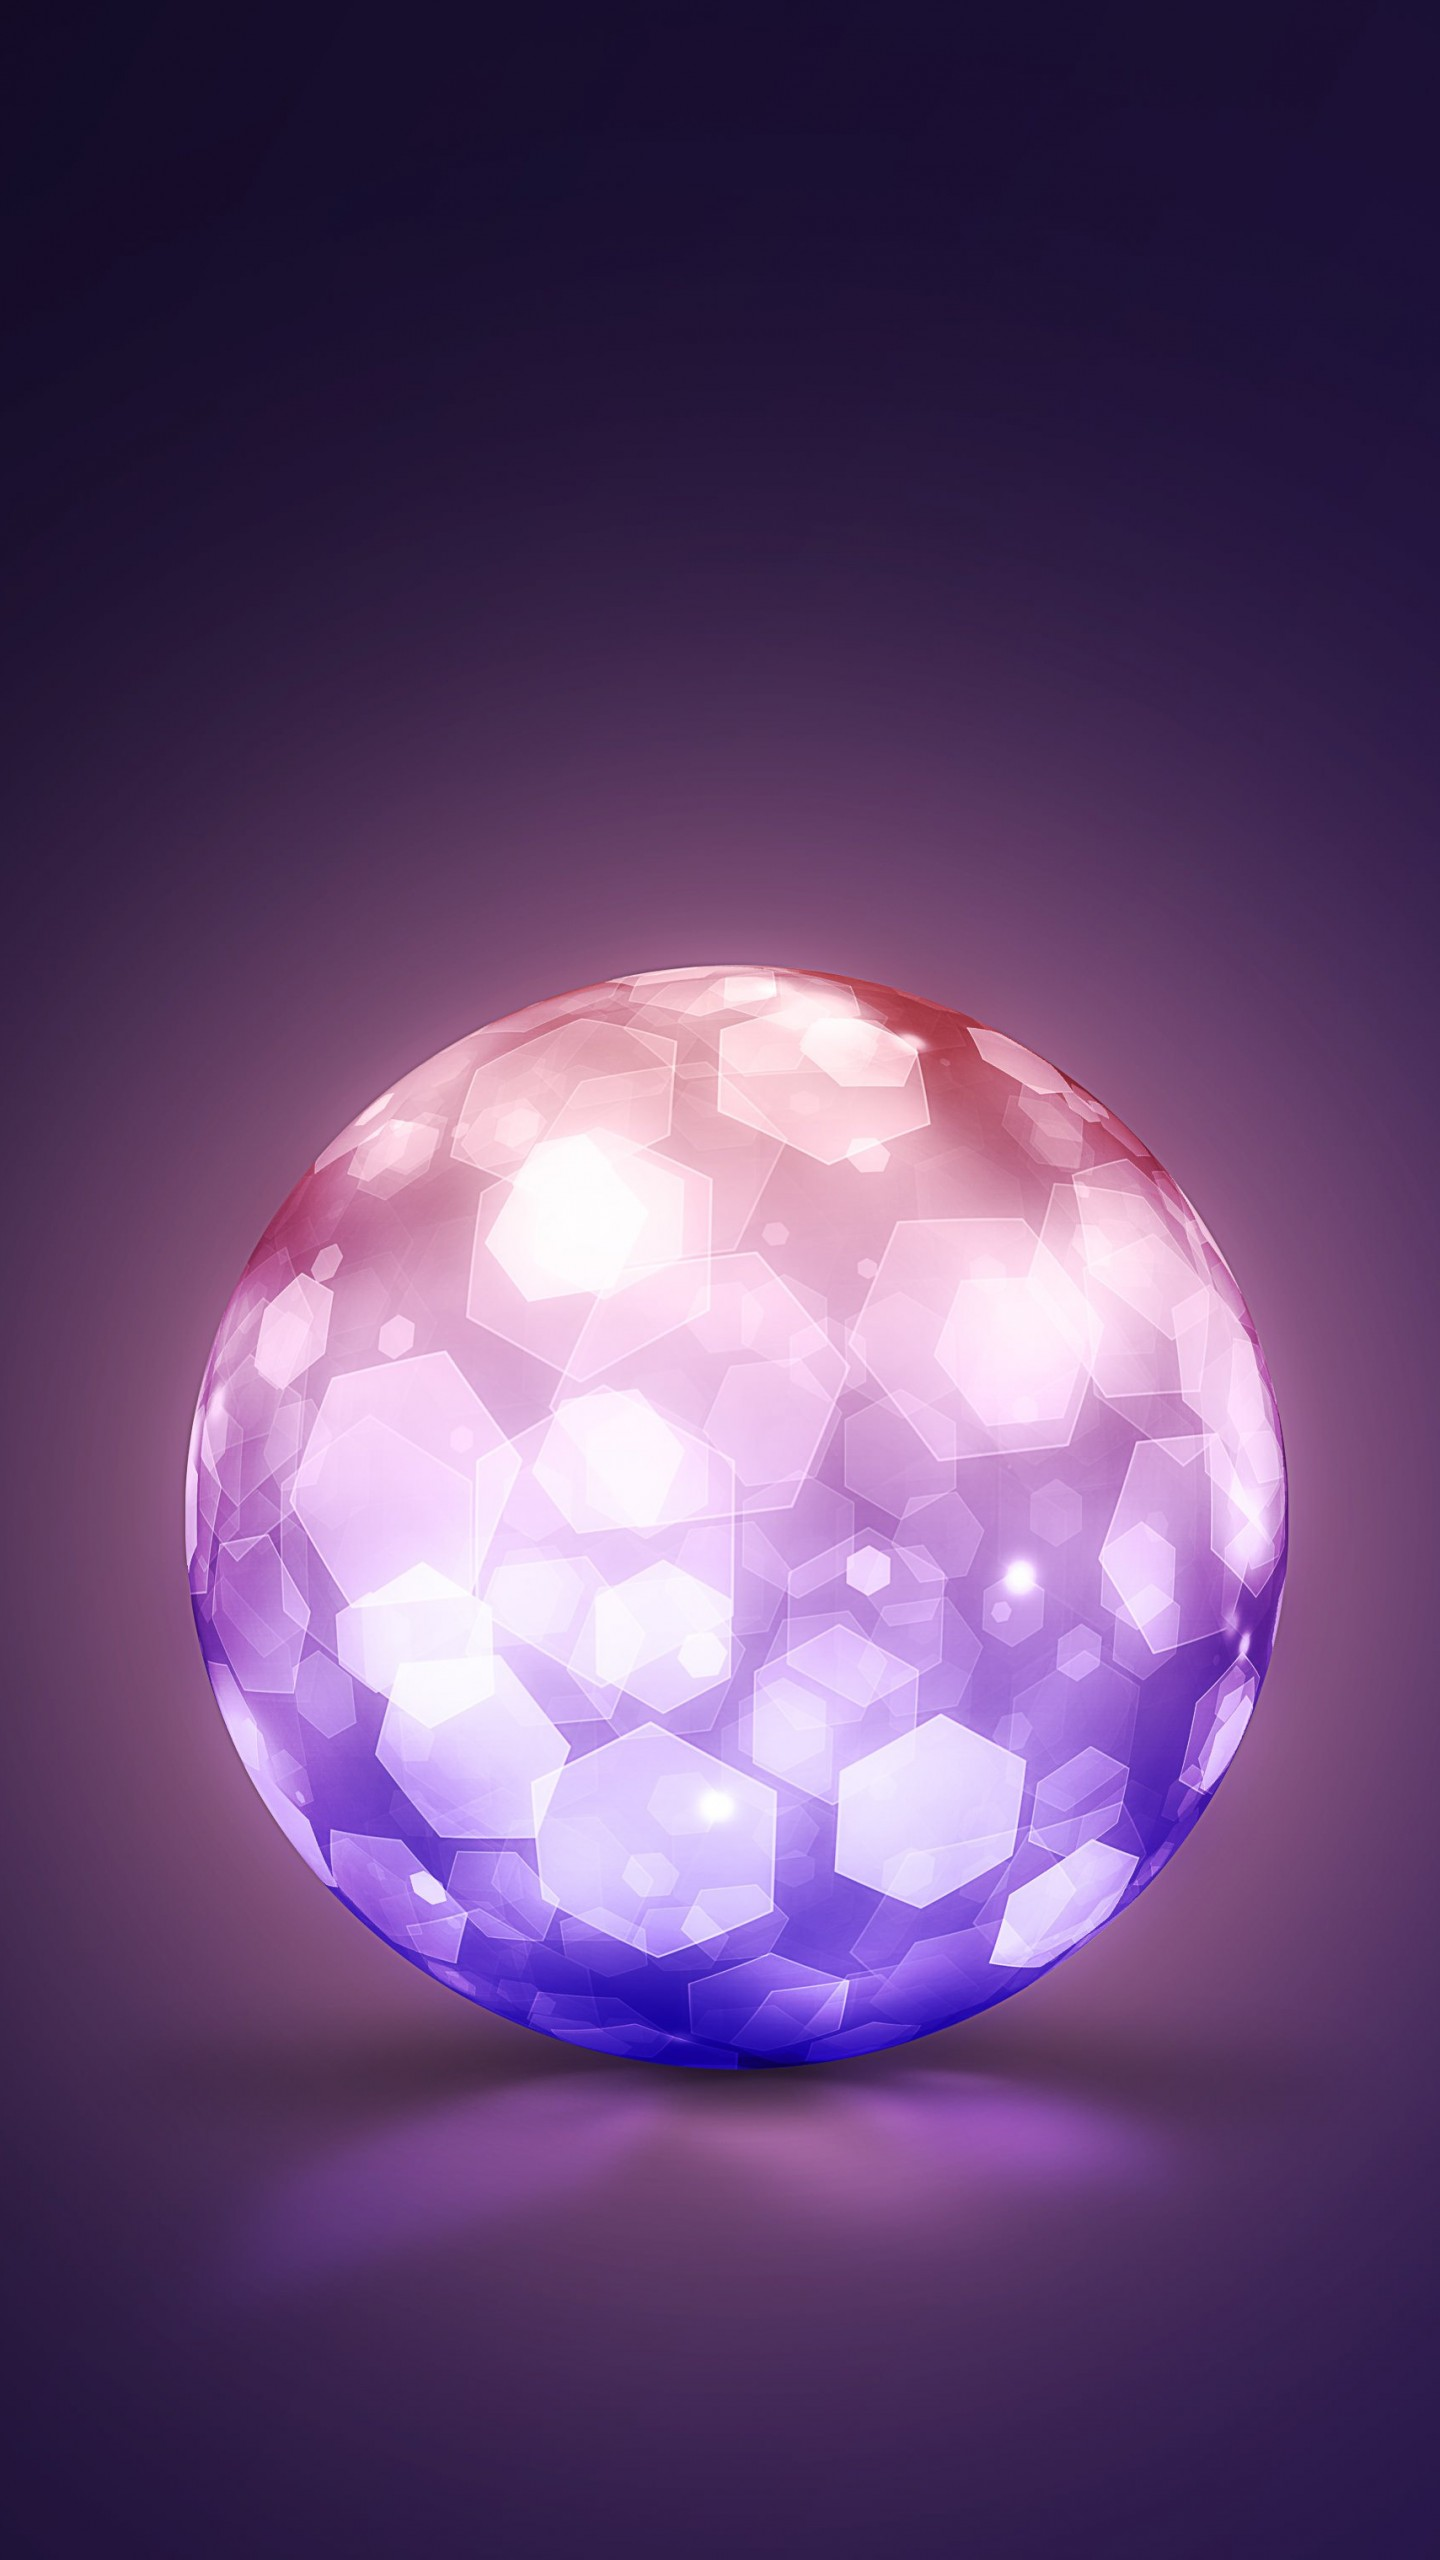 Lightning Ball Wallpaper for SAMSUNG Galaxy S6